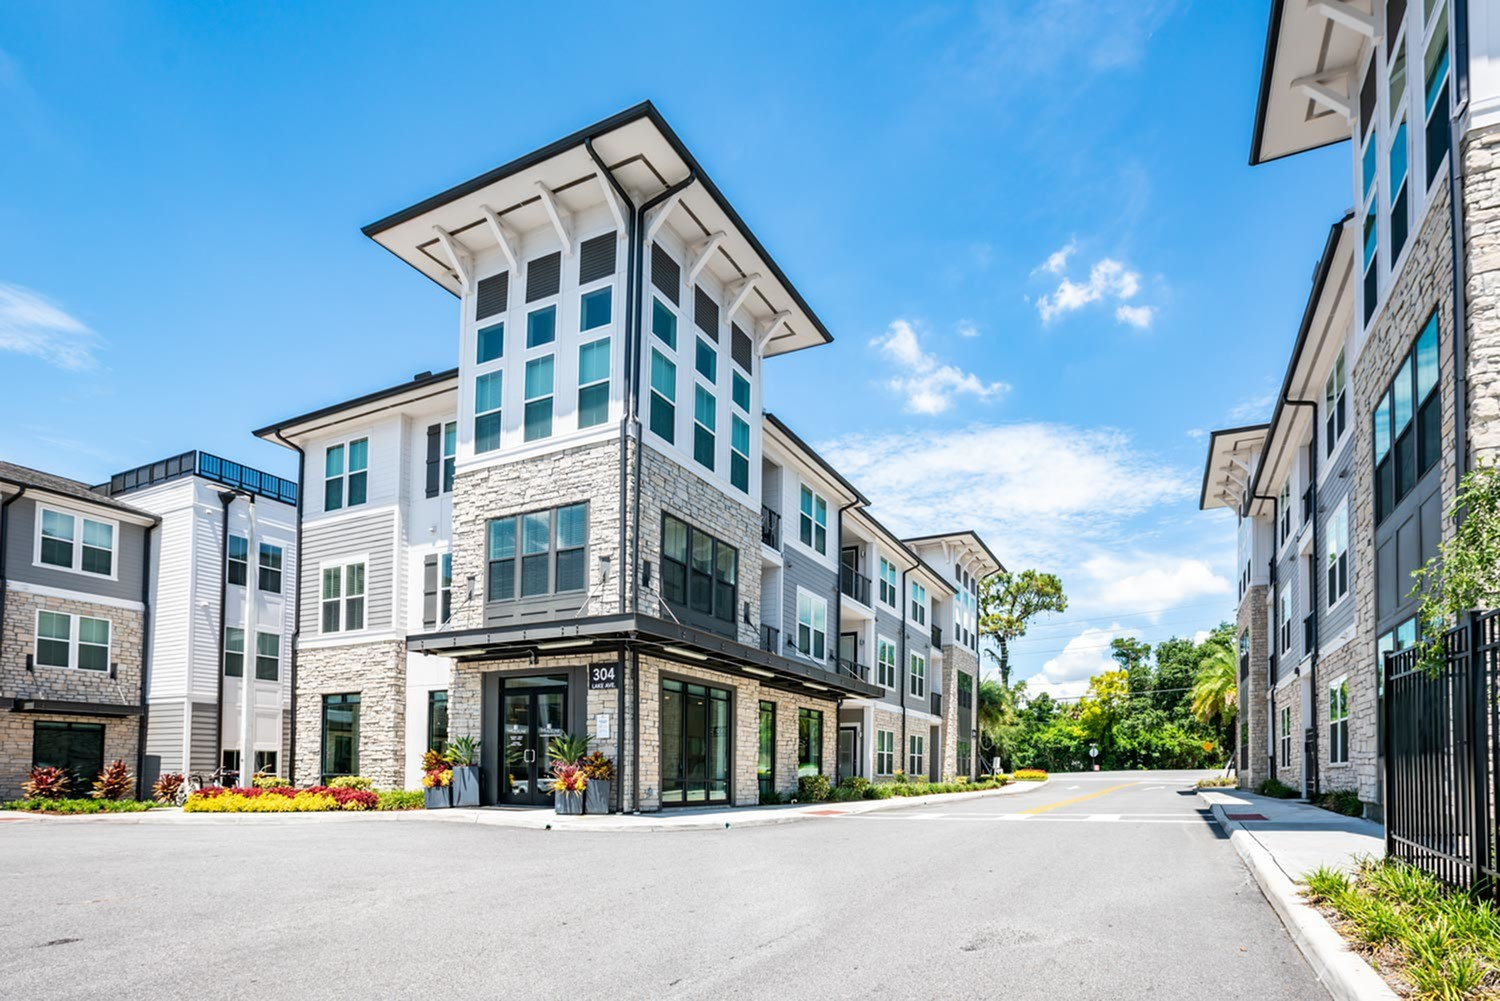 Apartments Near UCF The Adeline for University of Central Florida Students in Orlando, FL